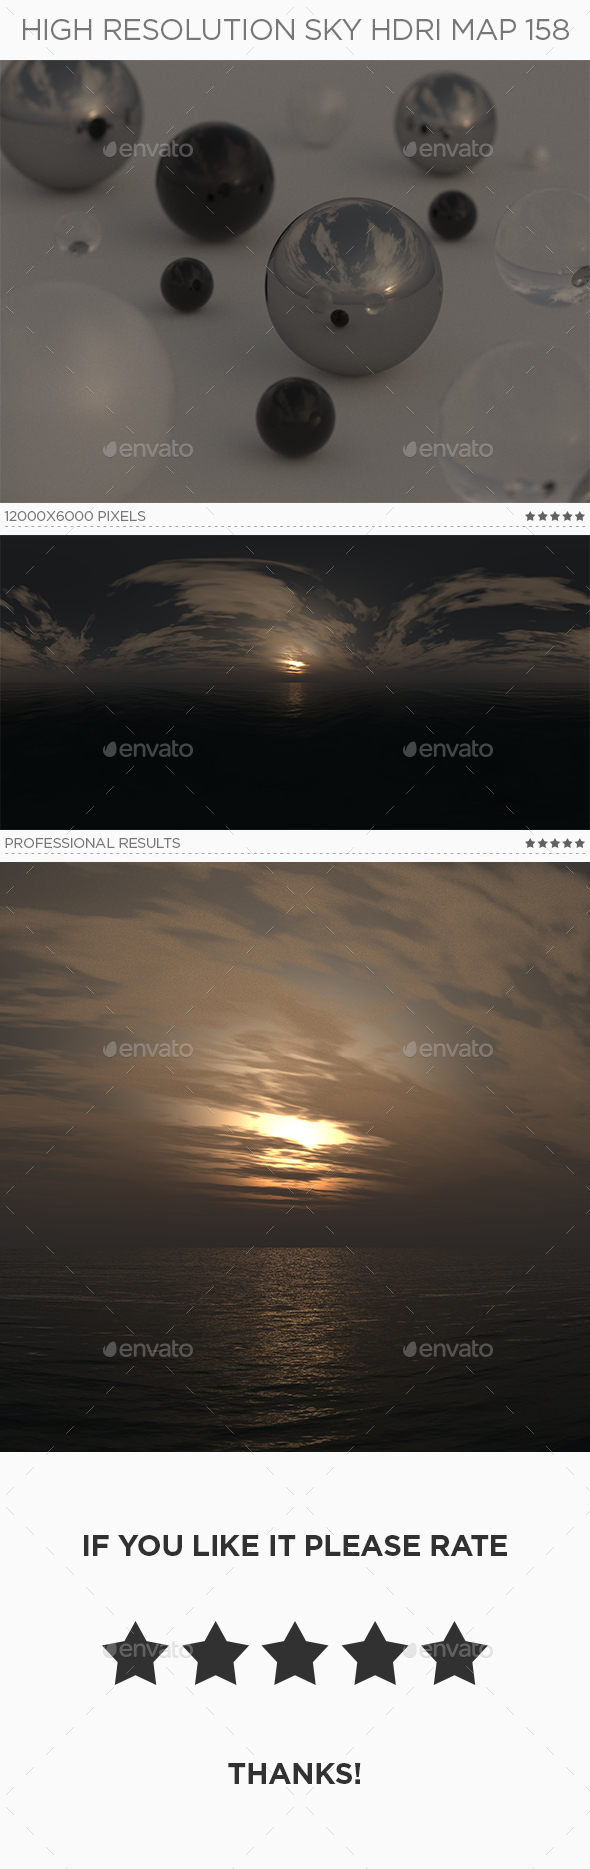 High Resolution Sky HDRi Map 158 - 3DOcean Item for Sale